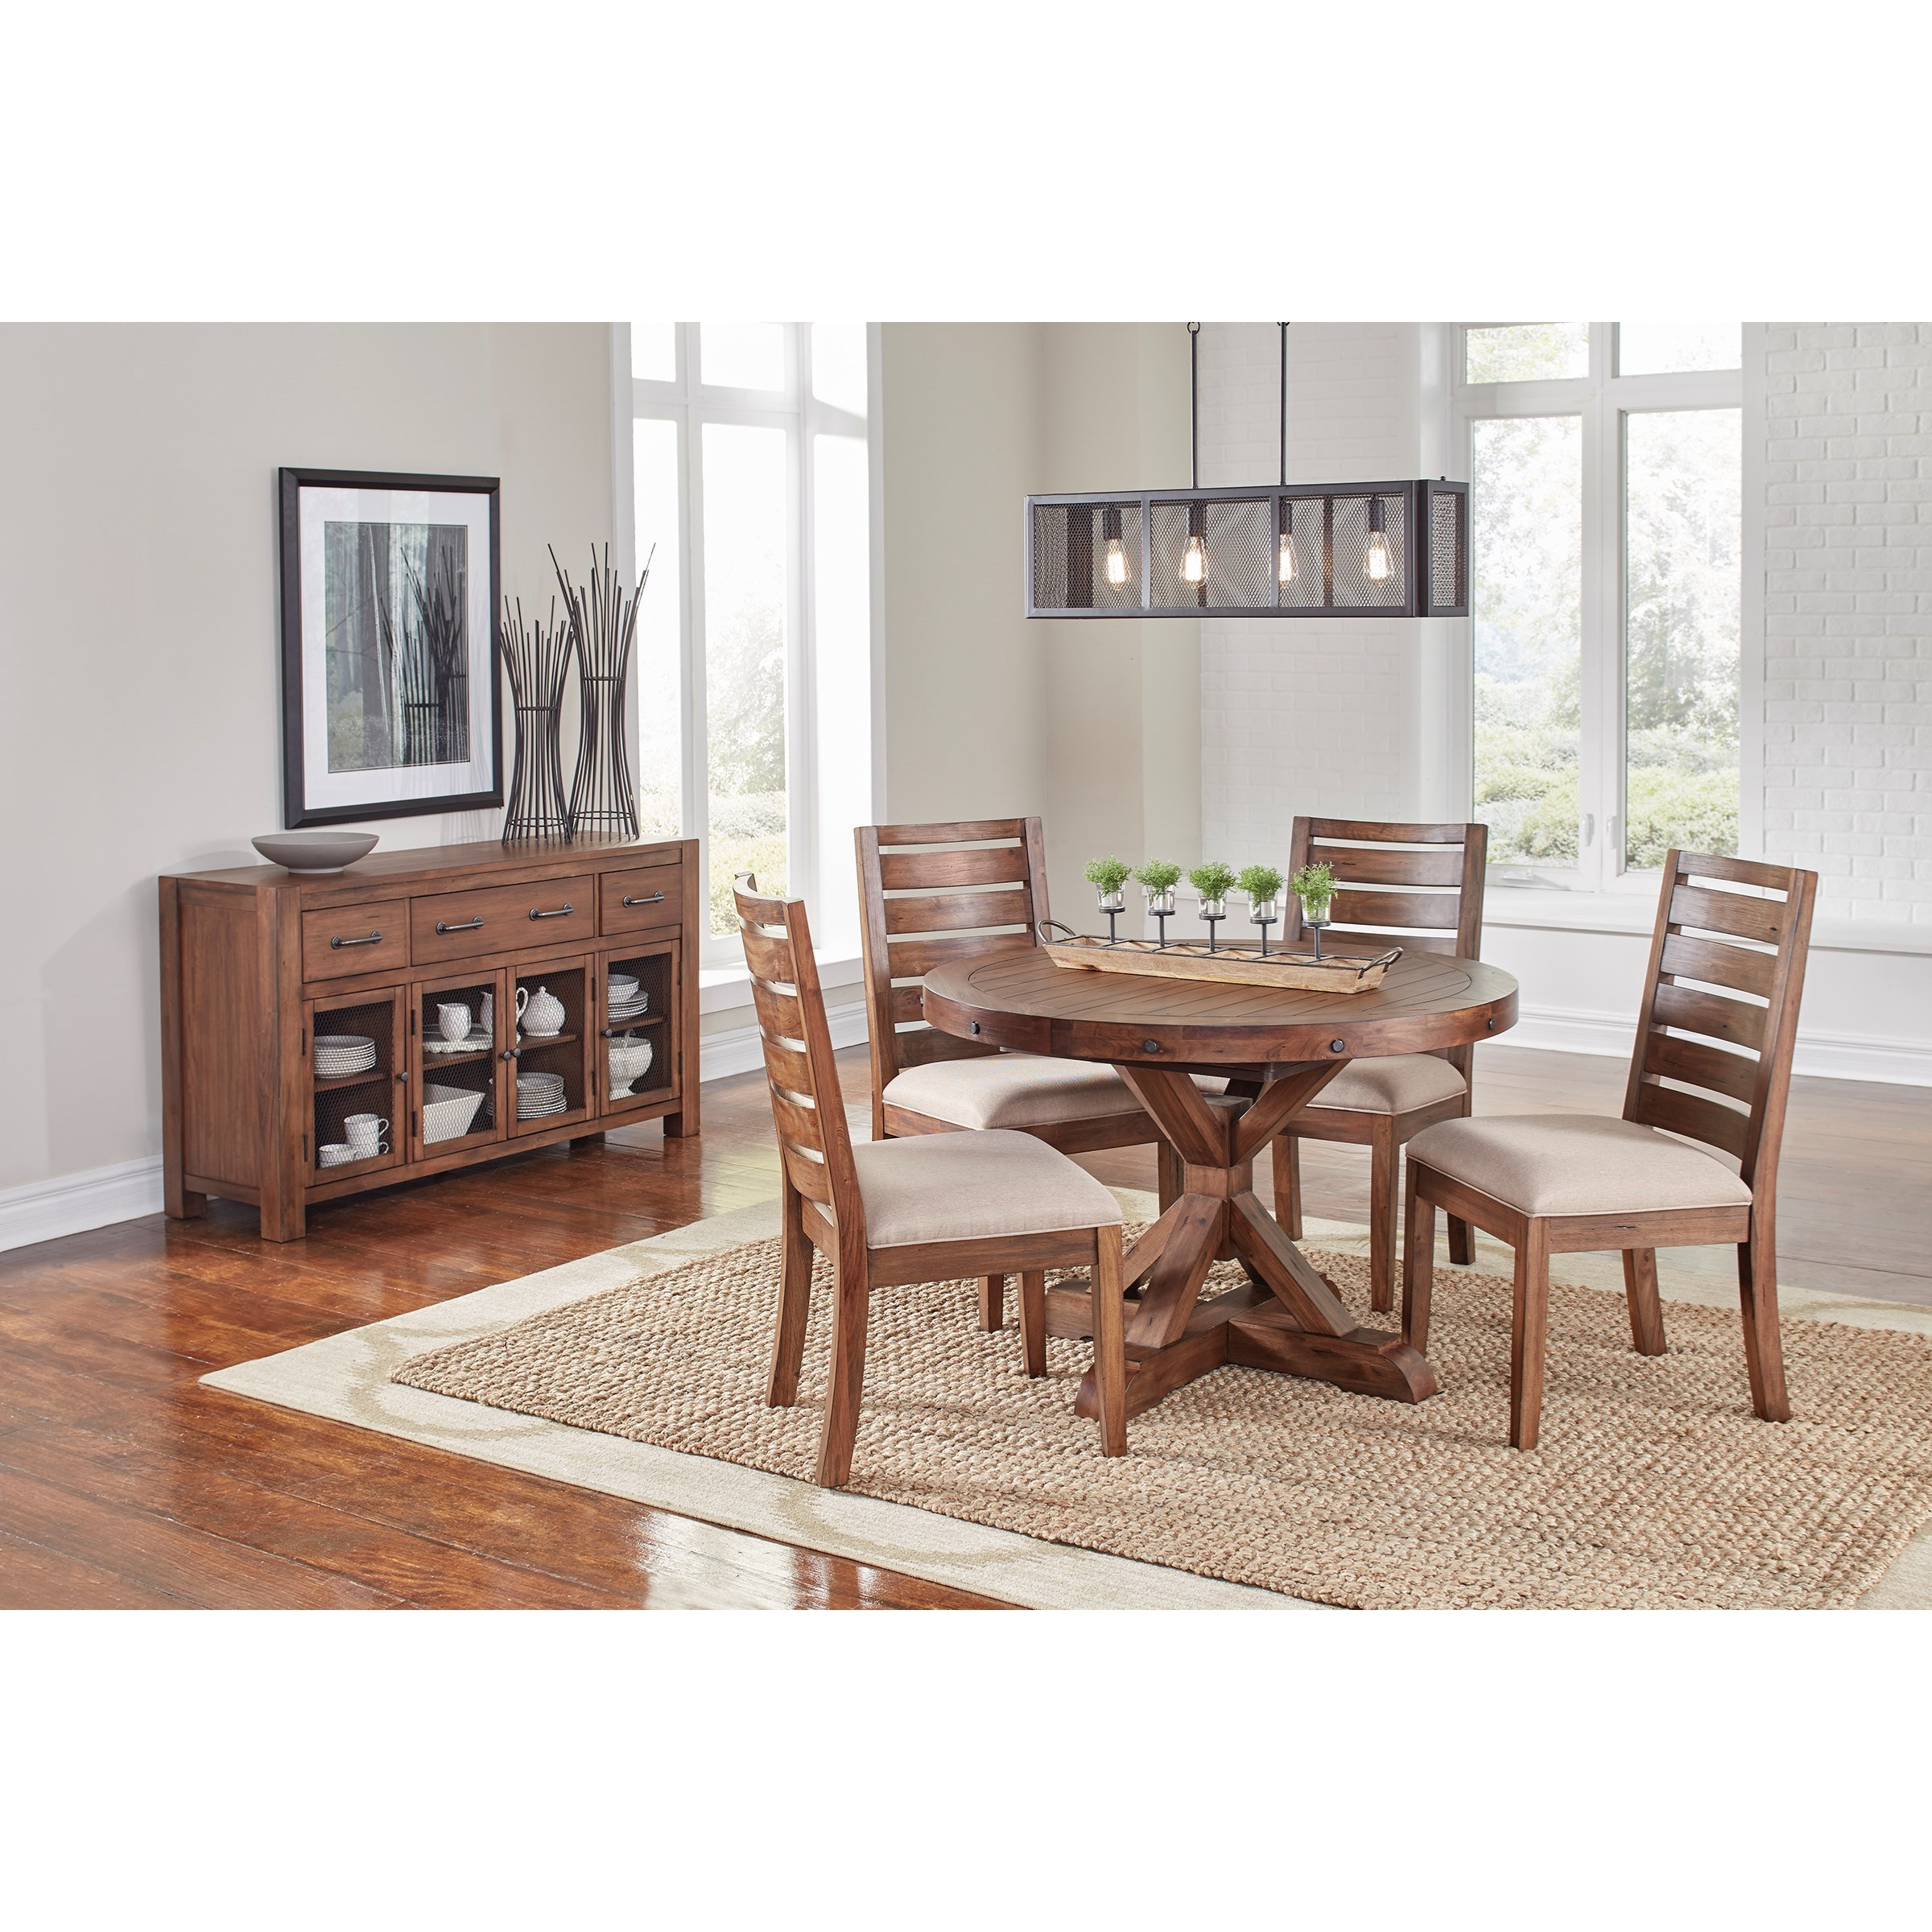 Anacortes Dining Room Group by AAmerica at Van Hill Furniture